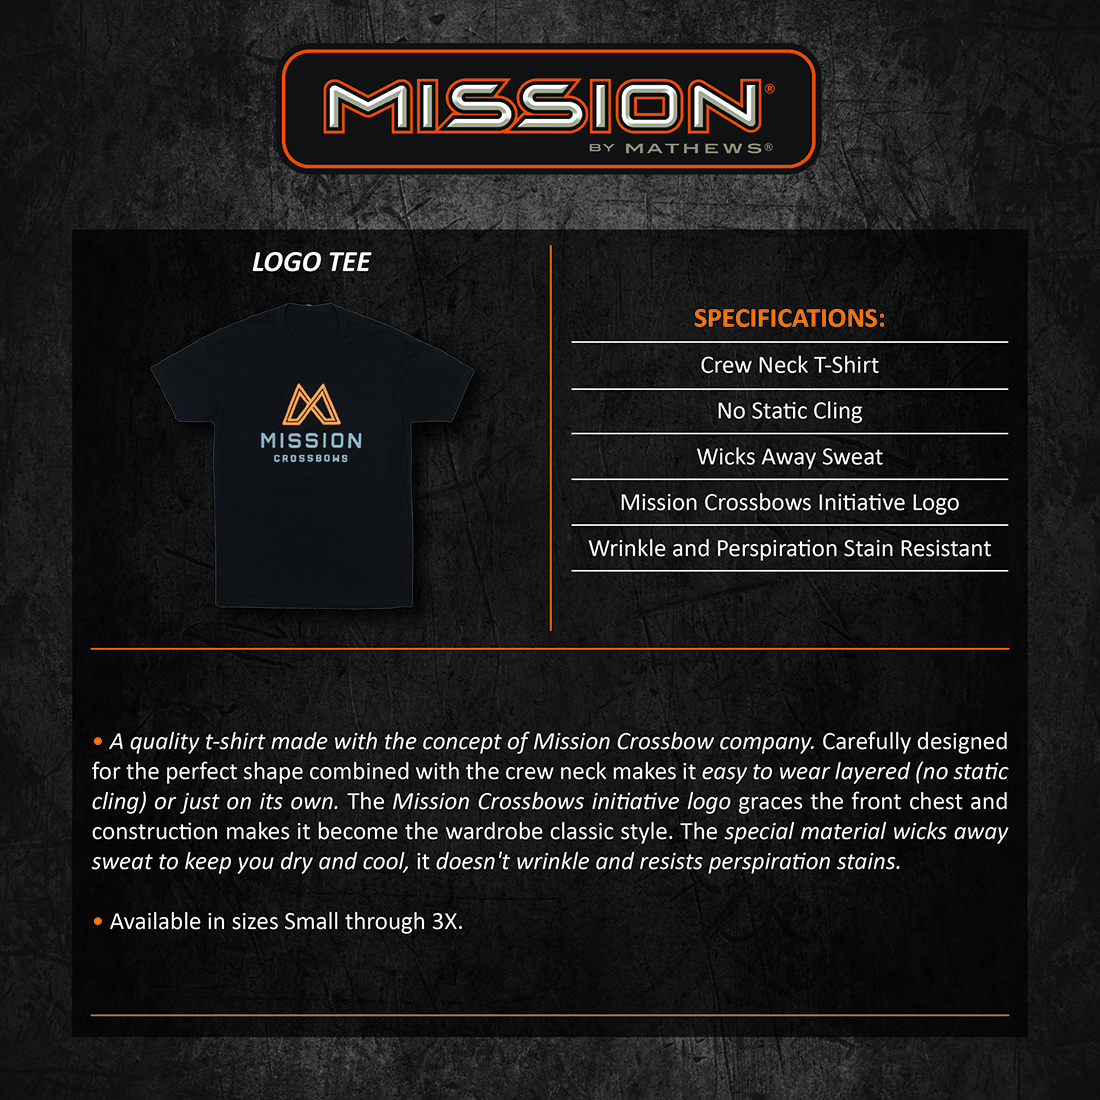 Mission_Crossbows_Logo_Tee_Product_Description